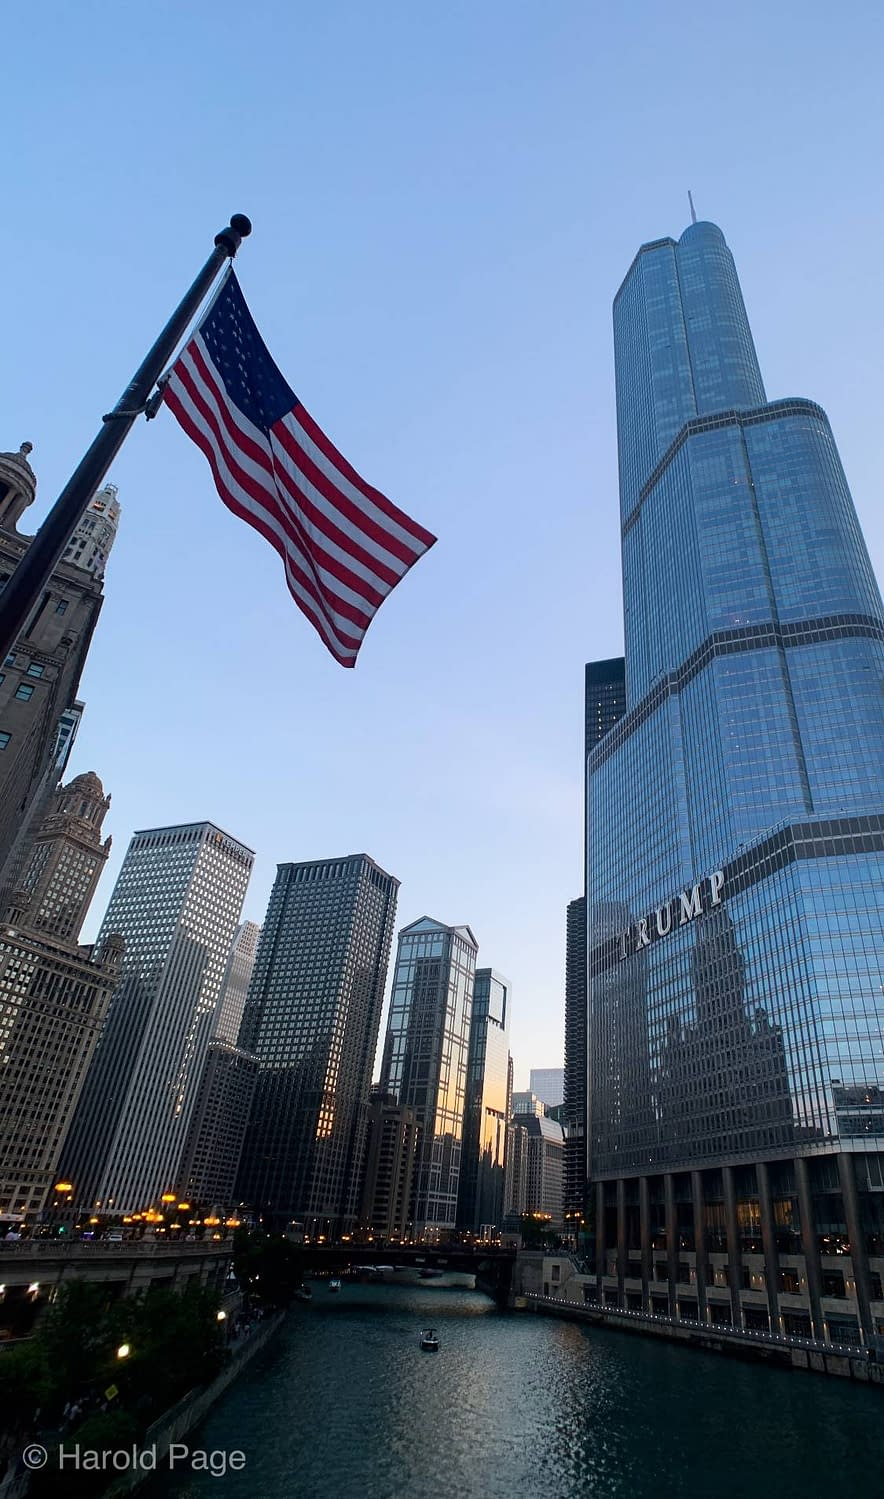 A photo of the Trump tower from the Chicago Riverwalk taken by our own Harold Page!